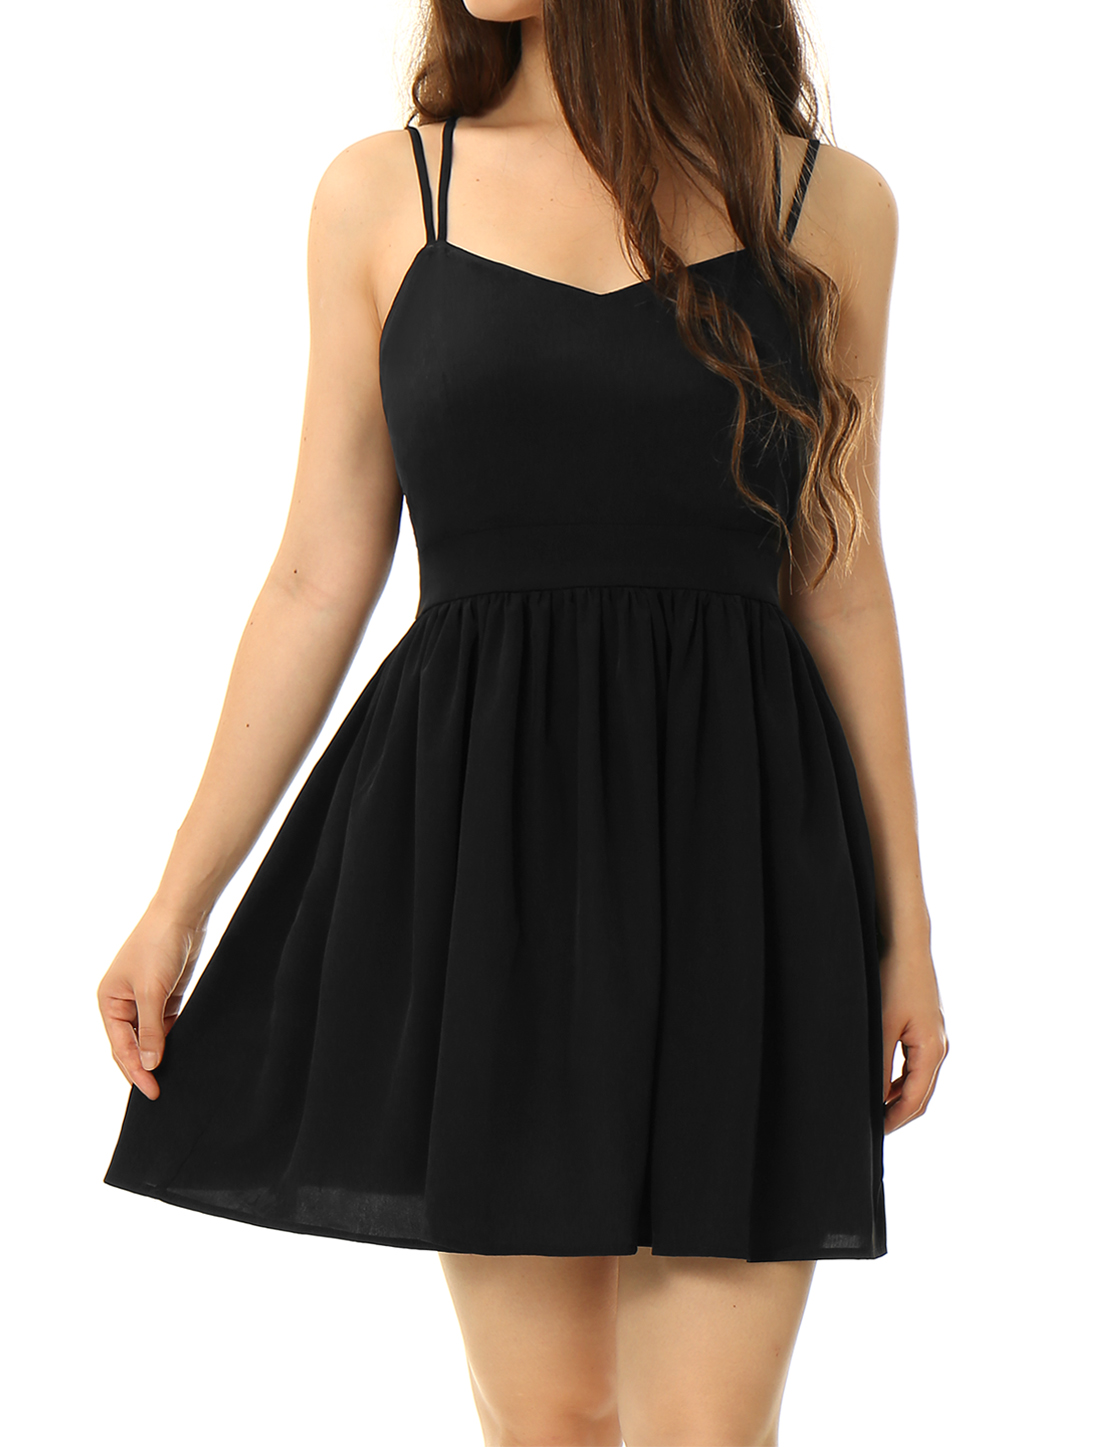 Women Dual Spaghetti Straps Criss Cross Back Mini Dress Black S